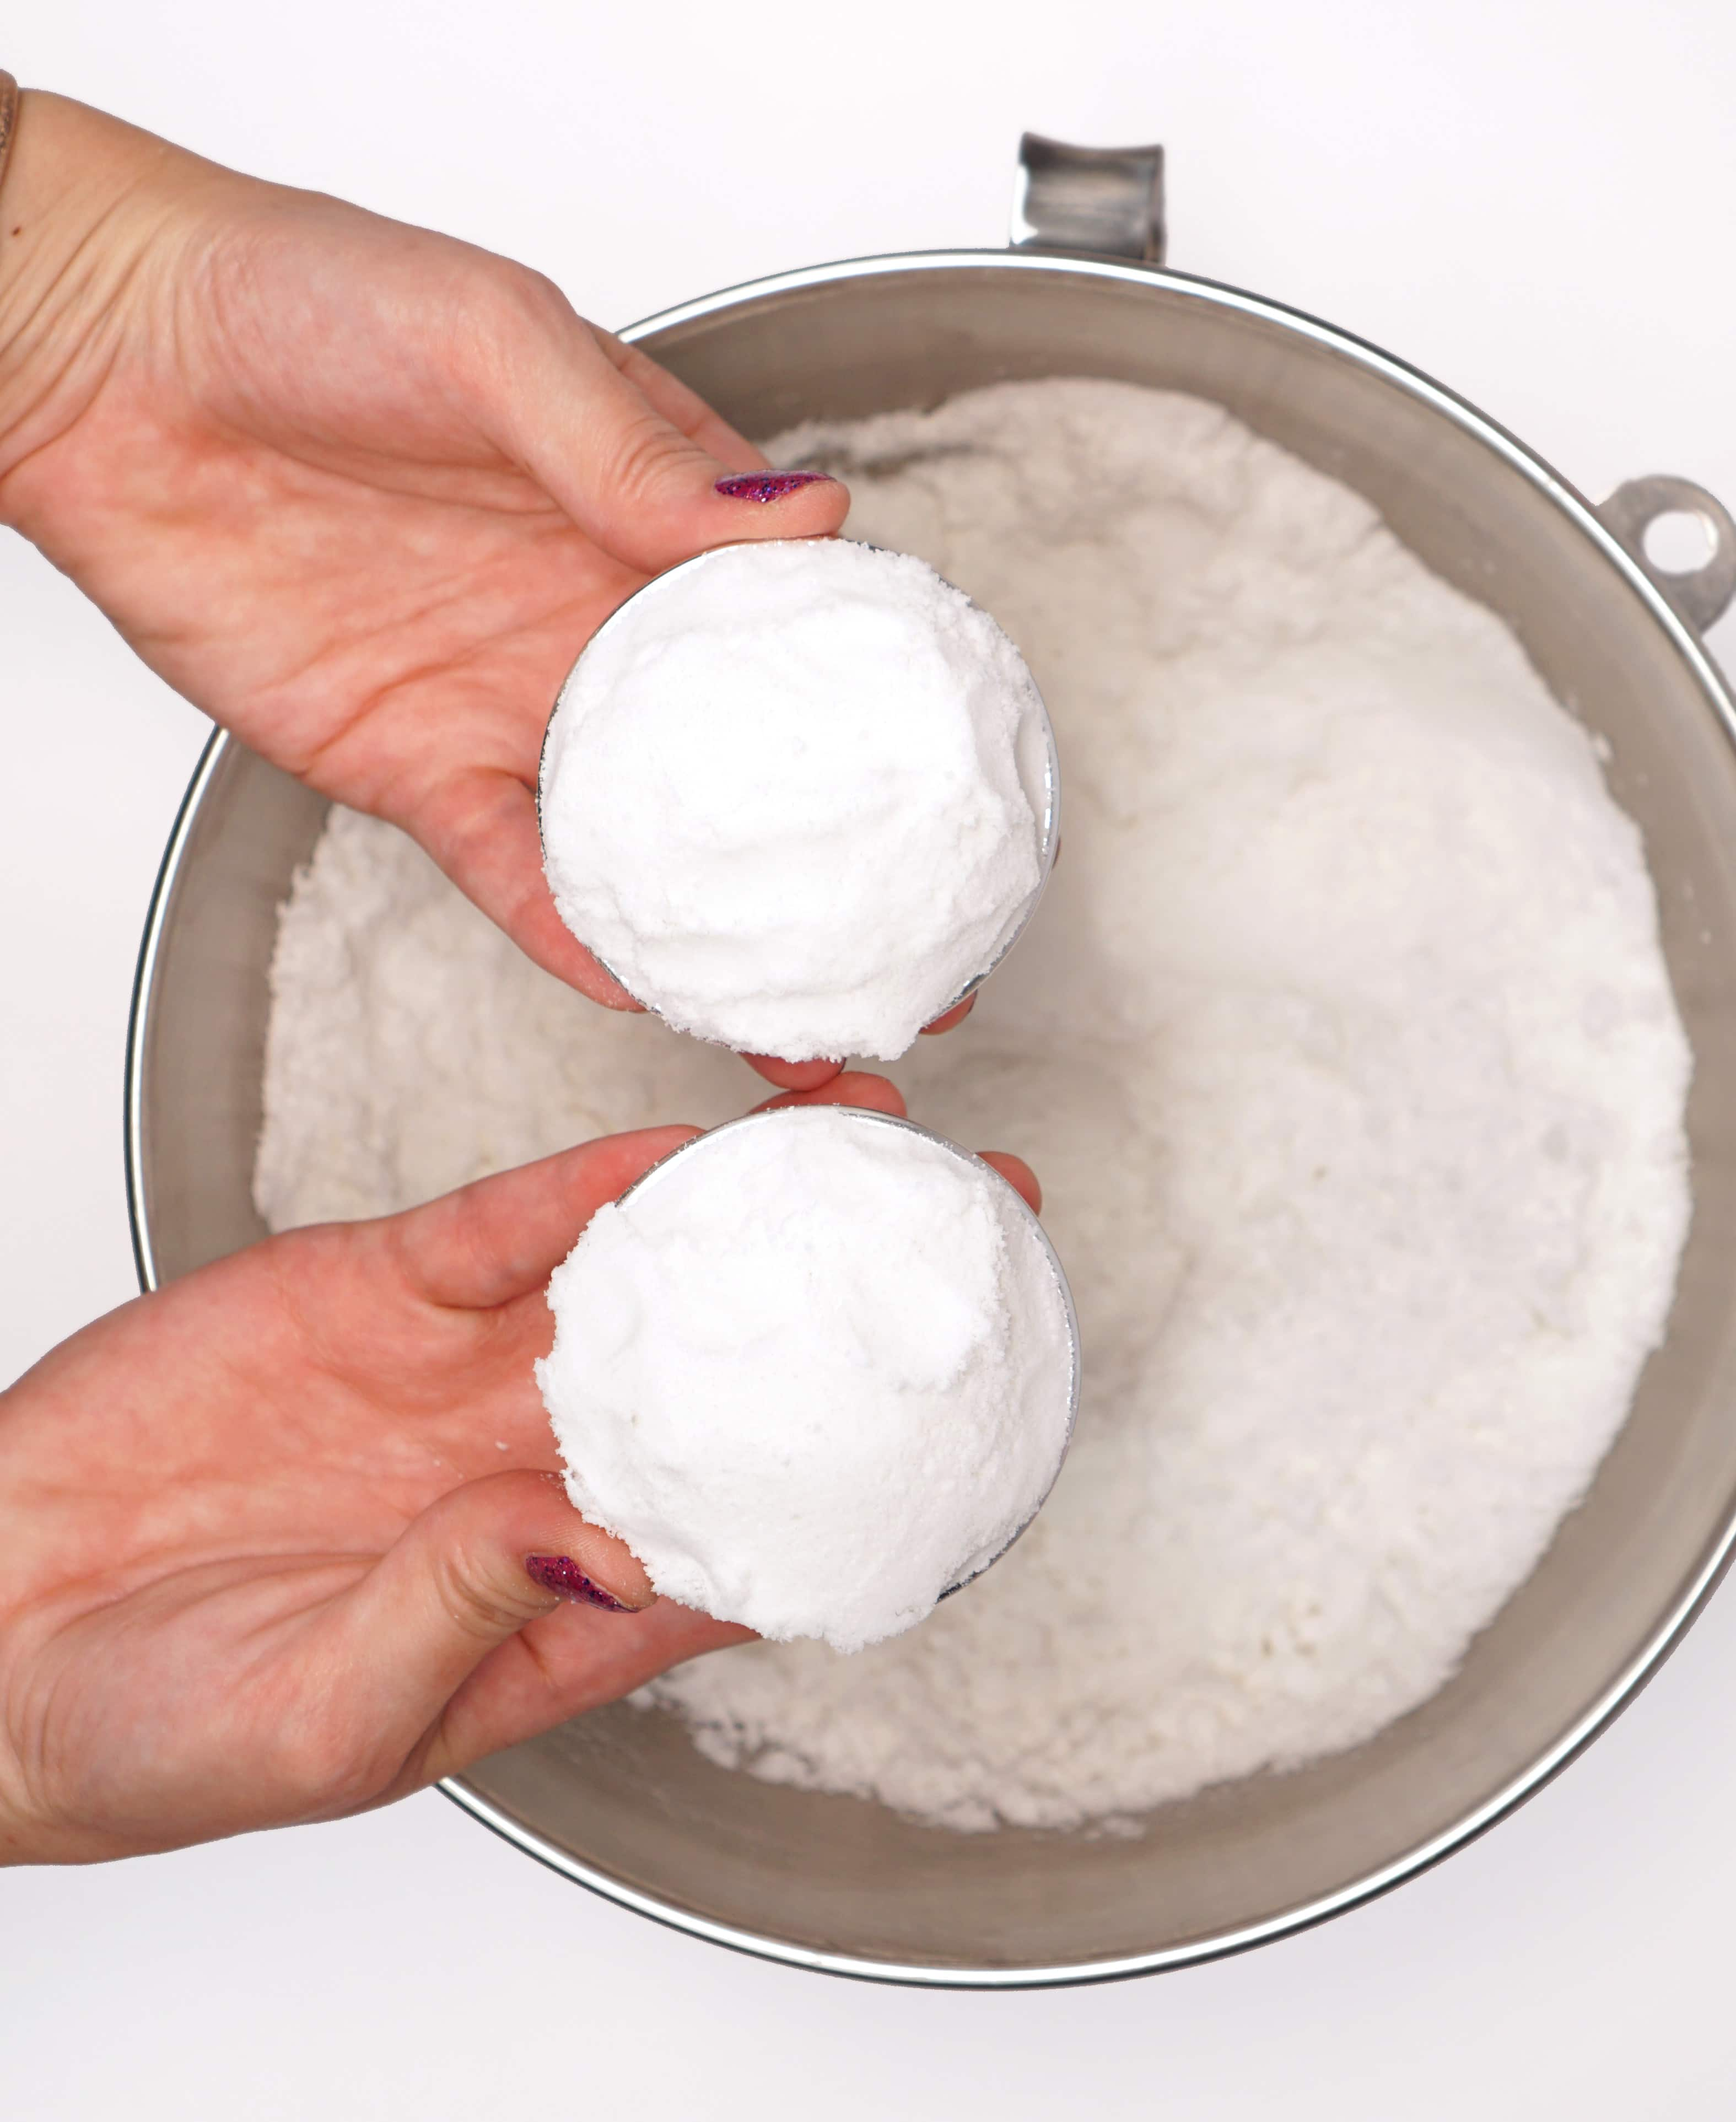 Overfilled halves of a metal bath bomb mold